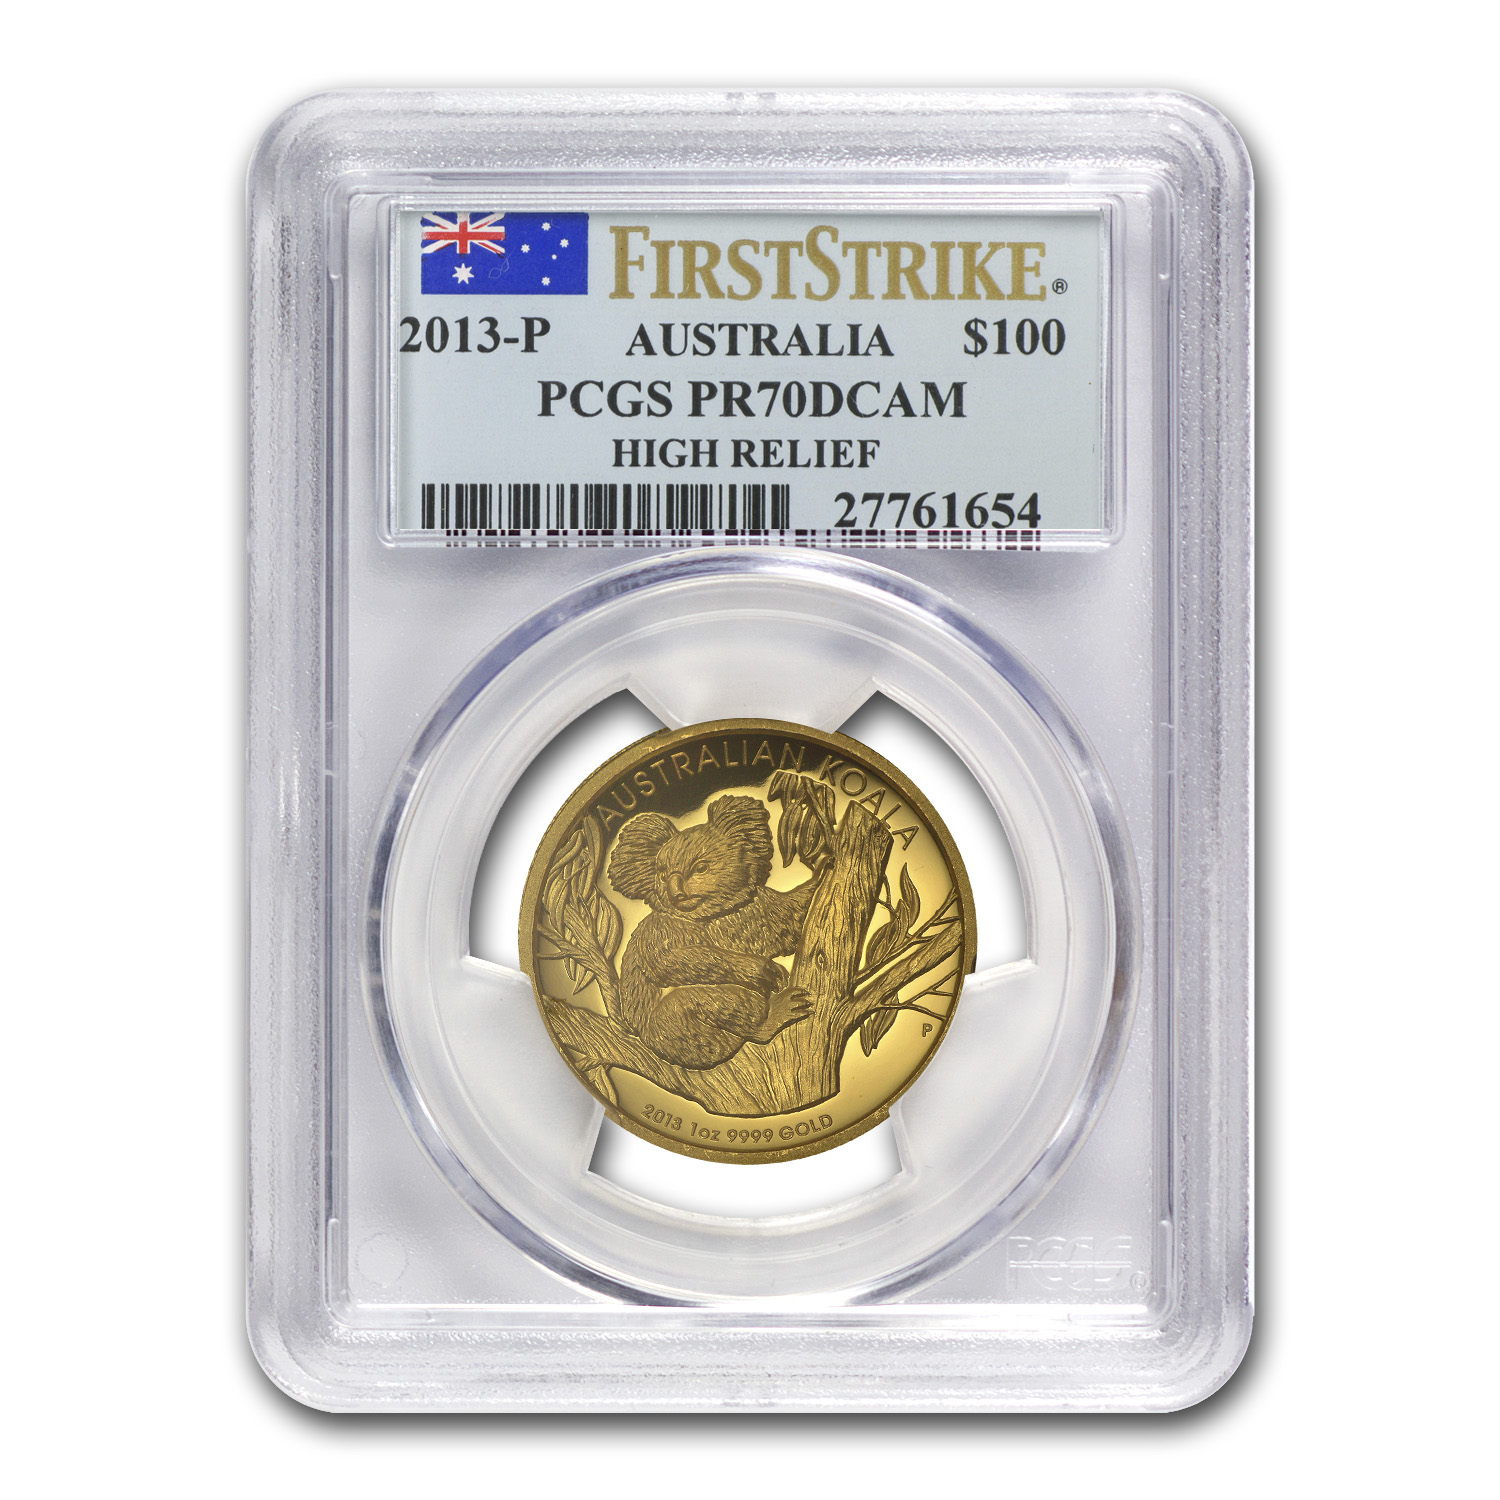 2013-P Australia 1 oz Gold Koala PR-70 PCGS (FS, High Relief)